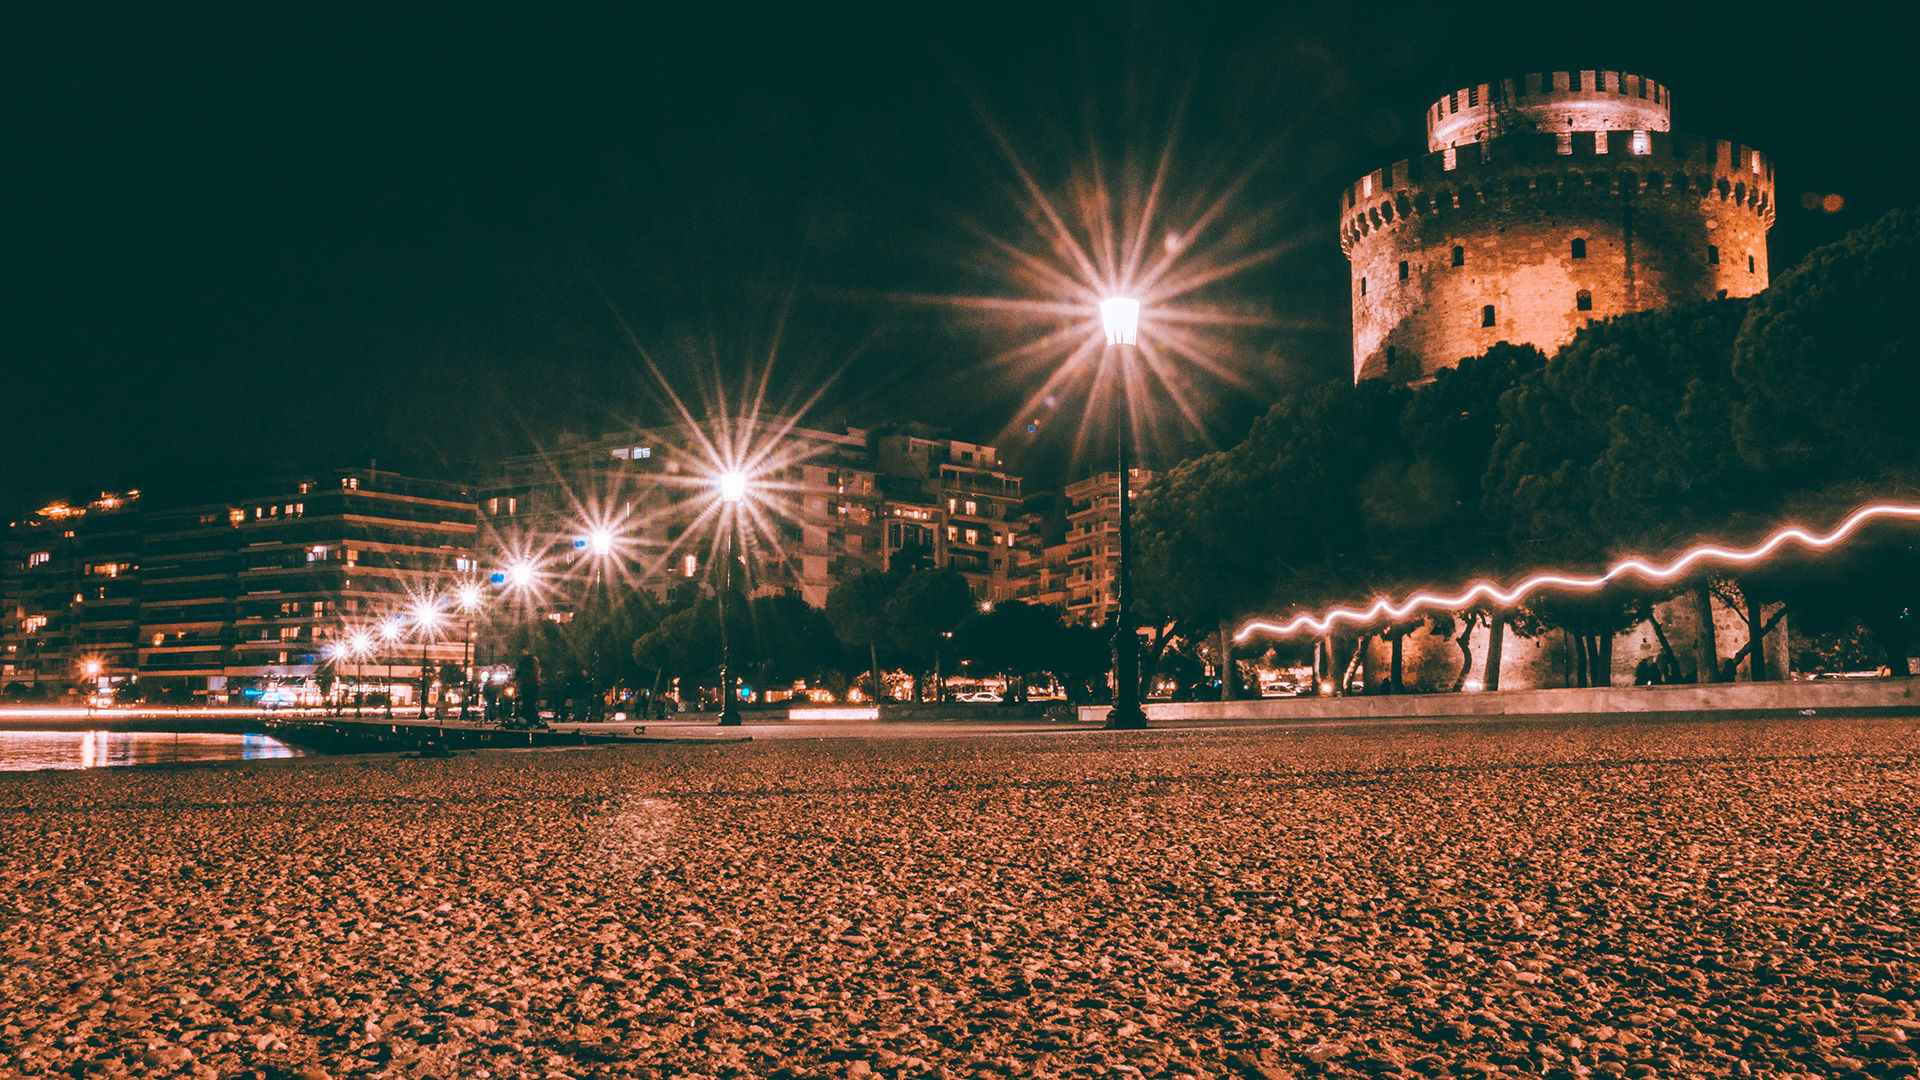 Night view of White Tower, Thessaloniki